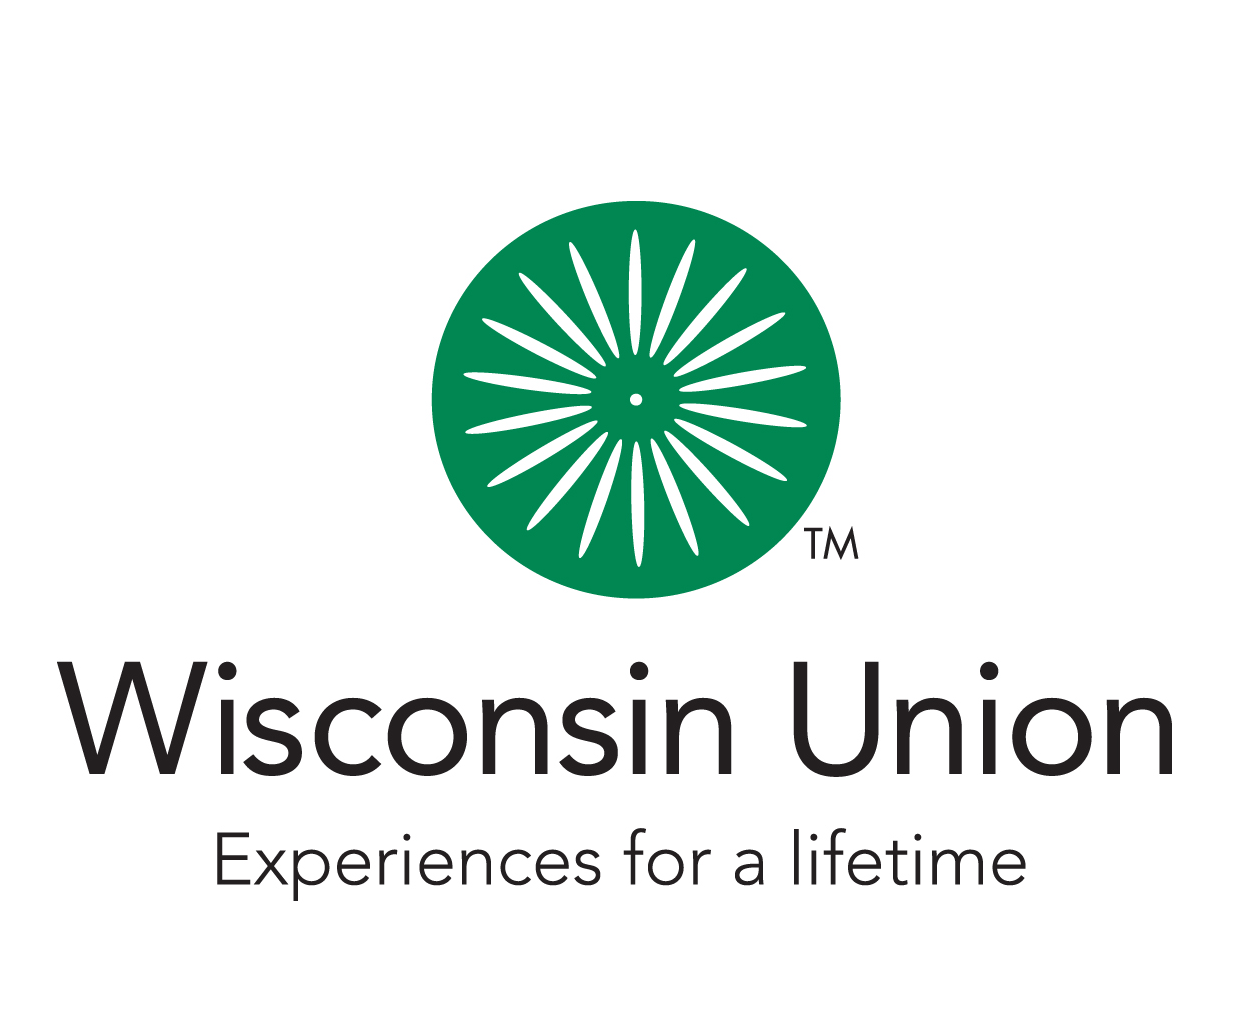 The Wisconsin Union logo